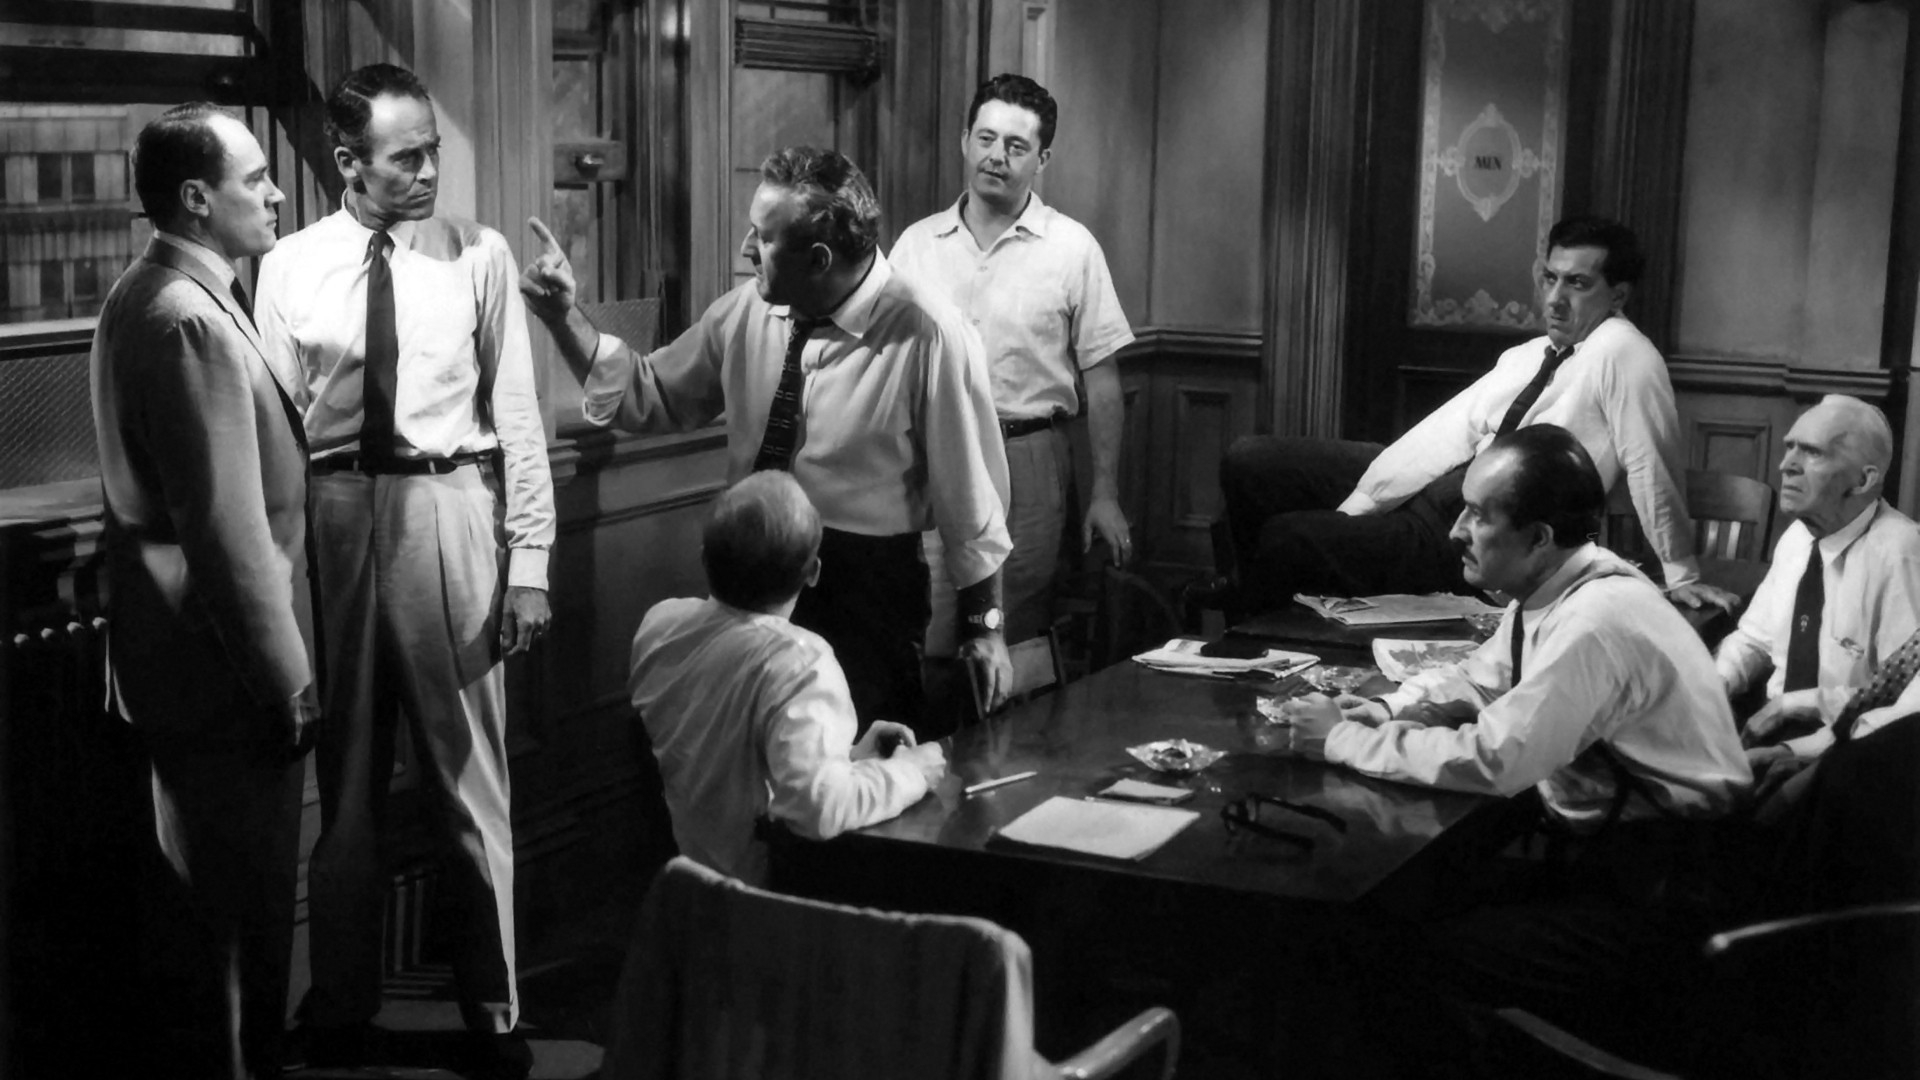 12 Angry Men Wallpaper   12 Angry Men Wallpaper 1920x1080 68842 1920x1080